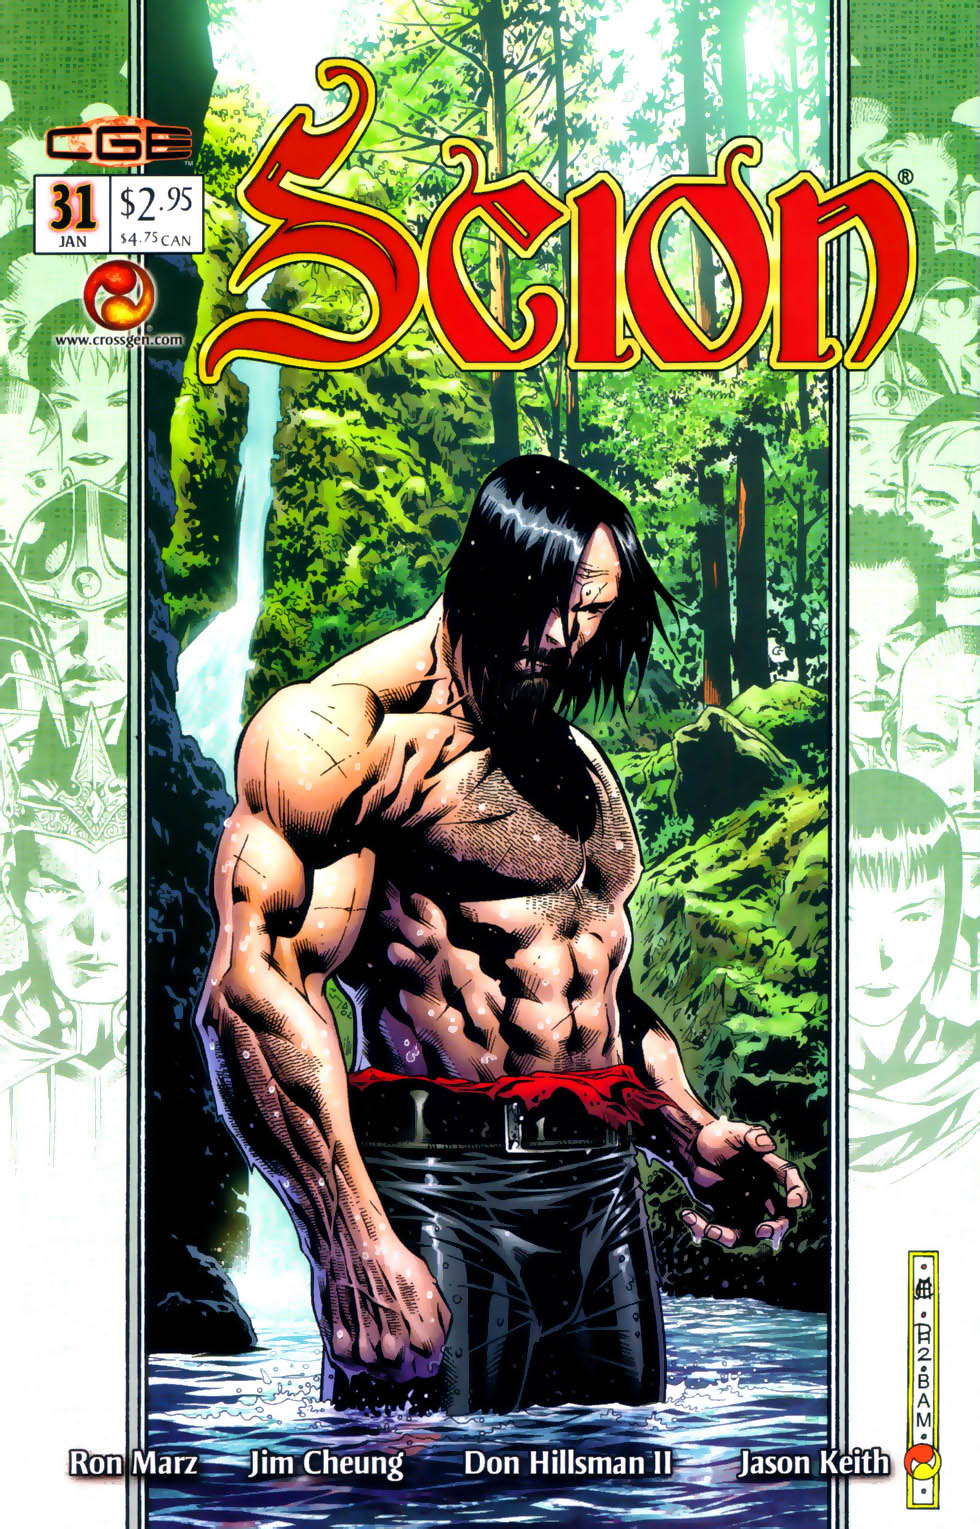 Read online Scion comic -  Issue #31 - 1